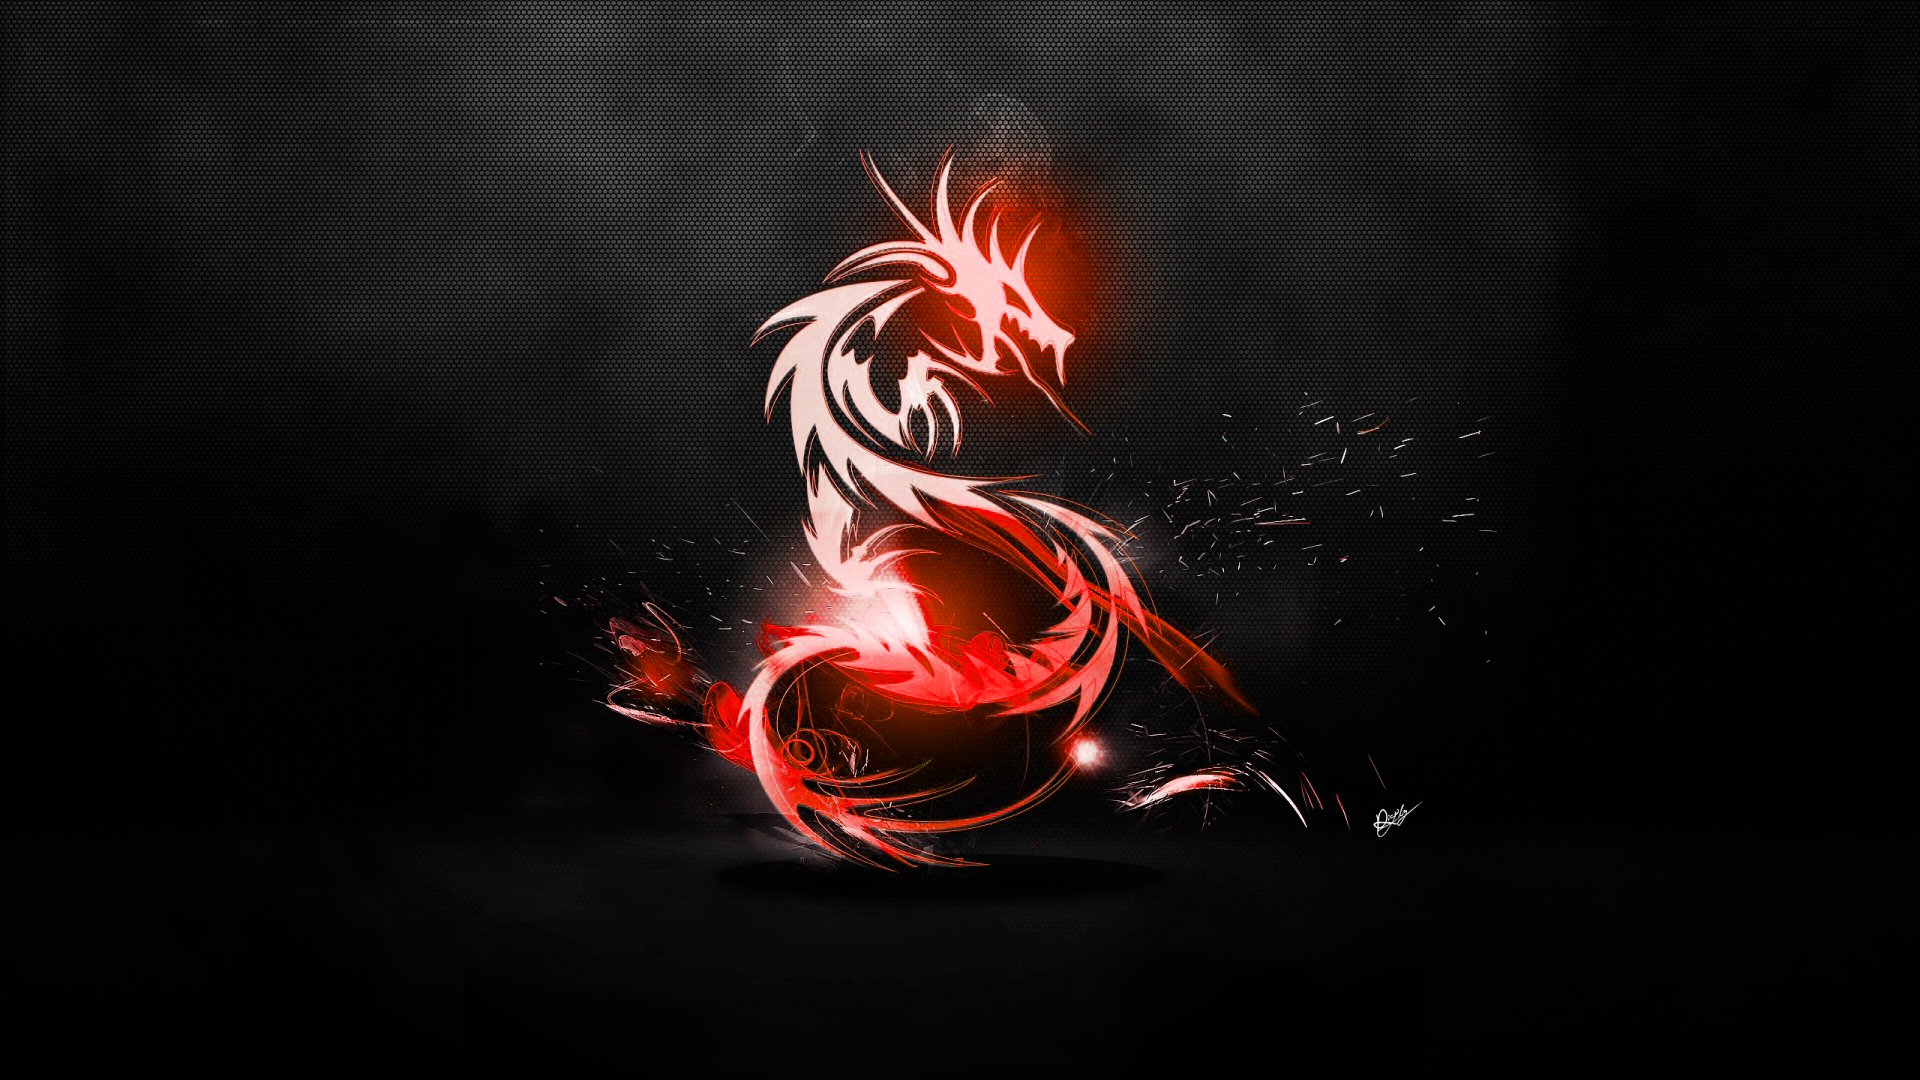 Abstract Dragon Wallpaper RedCarbon fibre black by maciekporebski 1920x1080